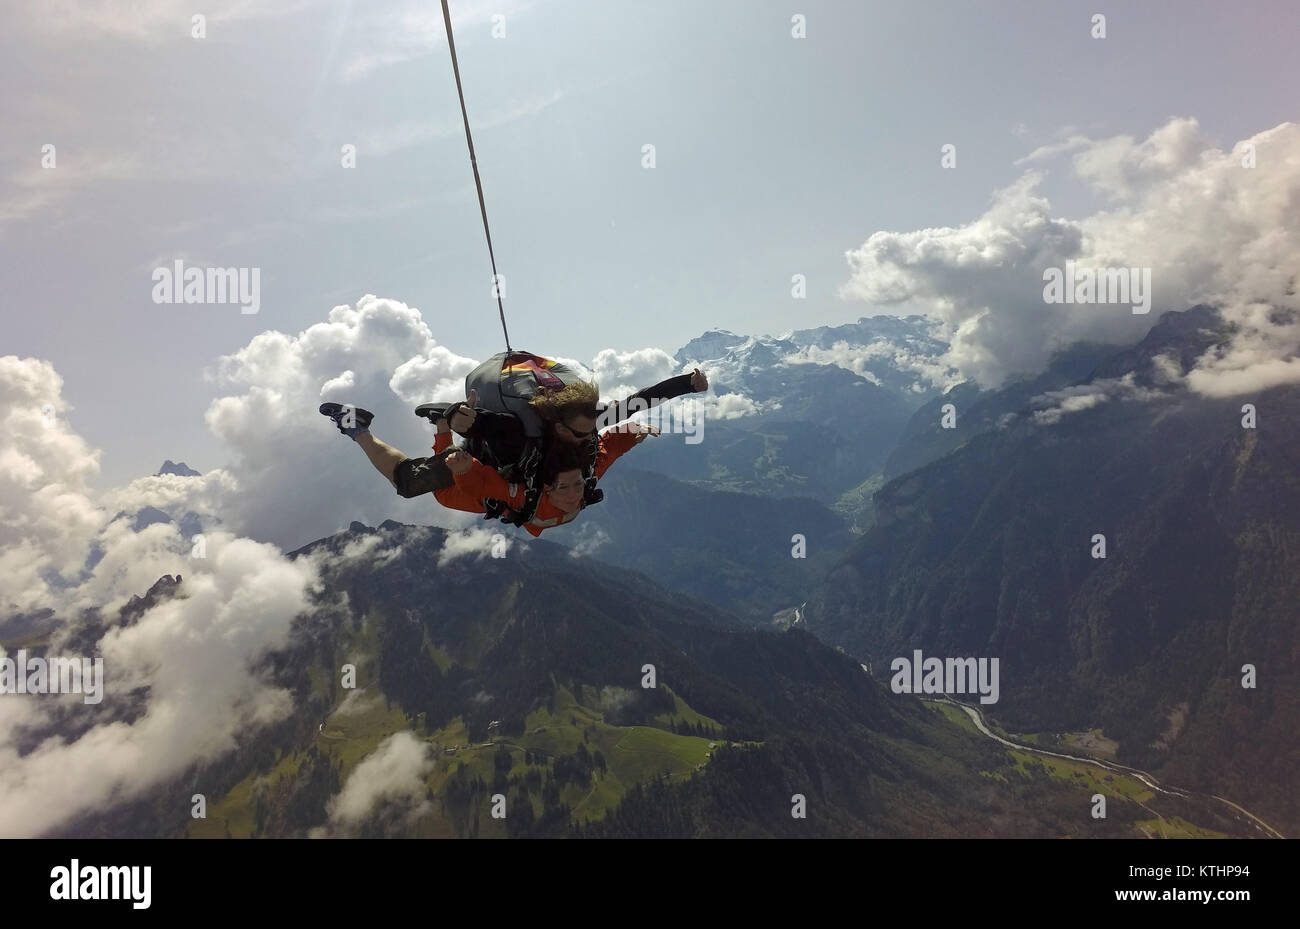 This tandem skydiving team is enjoying the scenic flight over a beautiful mountain and lake area. Check out the - Stock Image